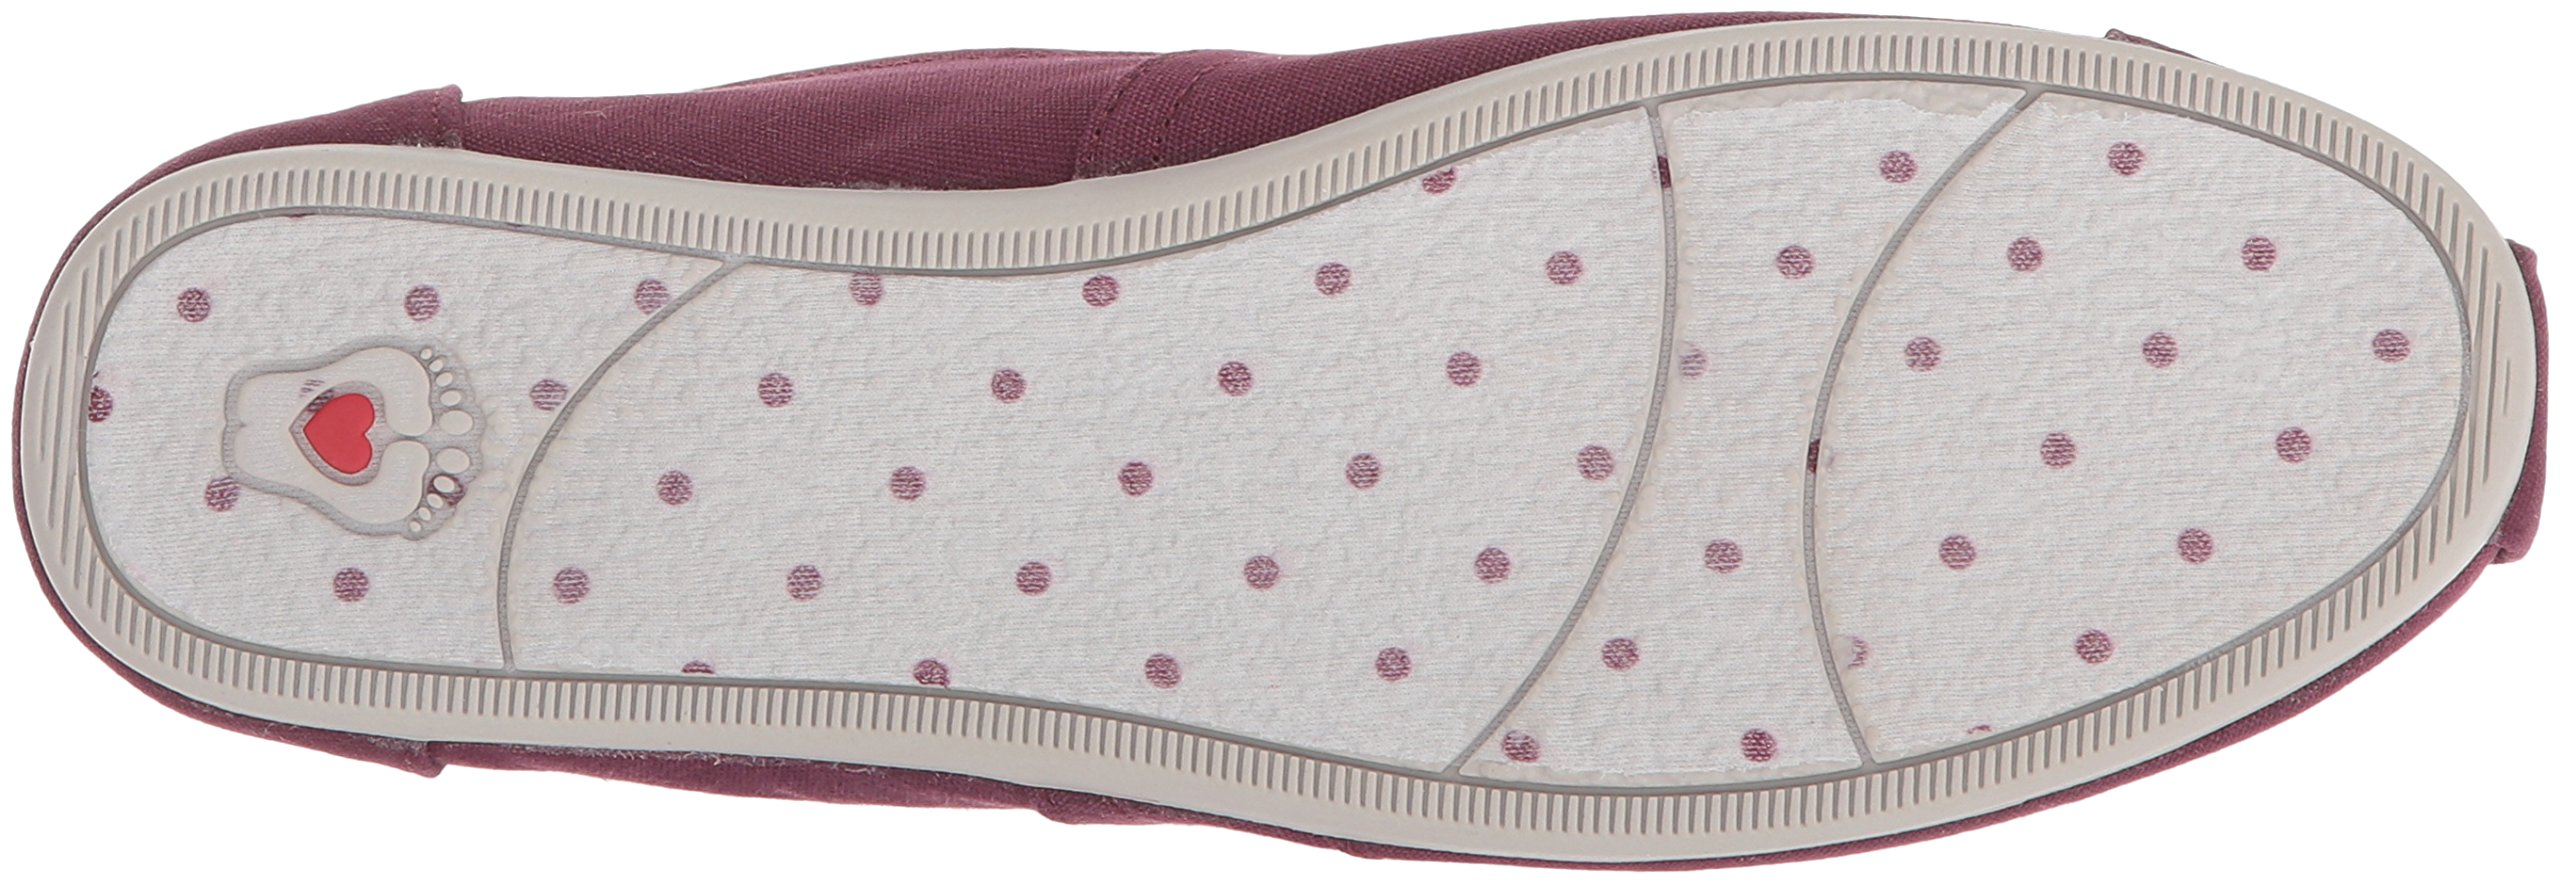 Skechers BOBS Women's Plush-Peace and Love Ballet Flat, Burgundy, 8 M US by Skechers (Image #3)